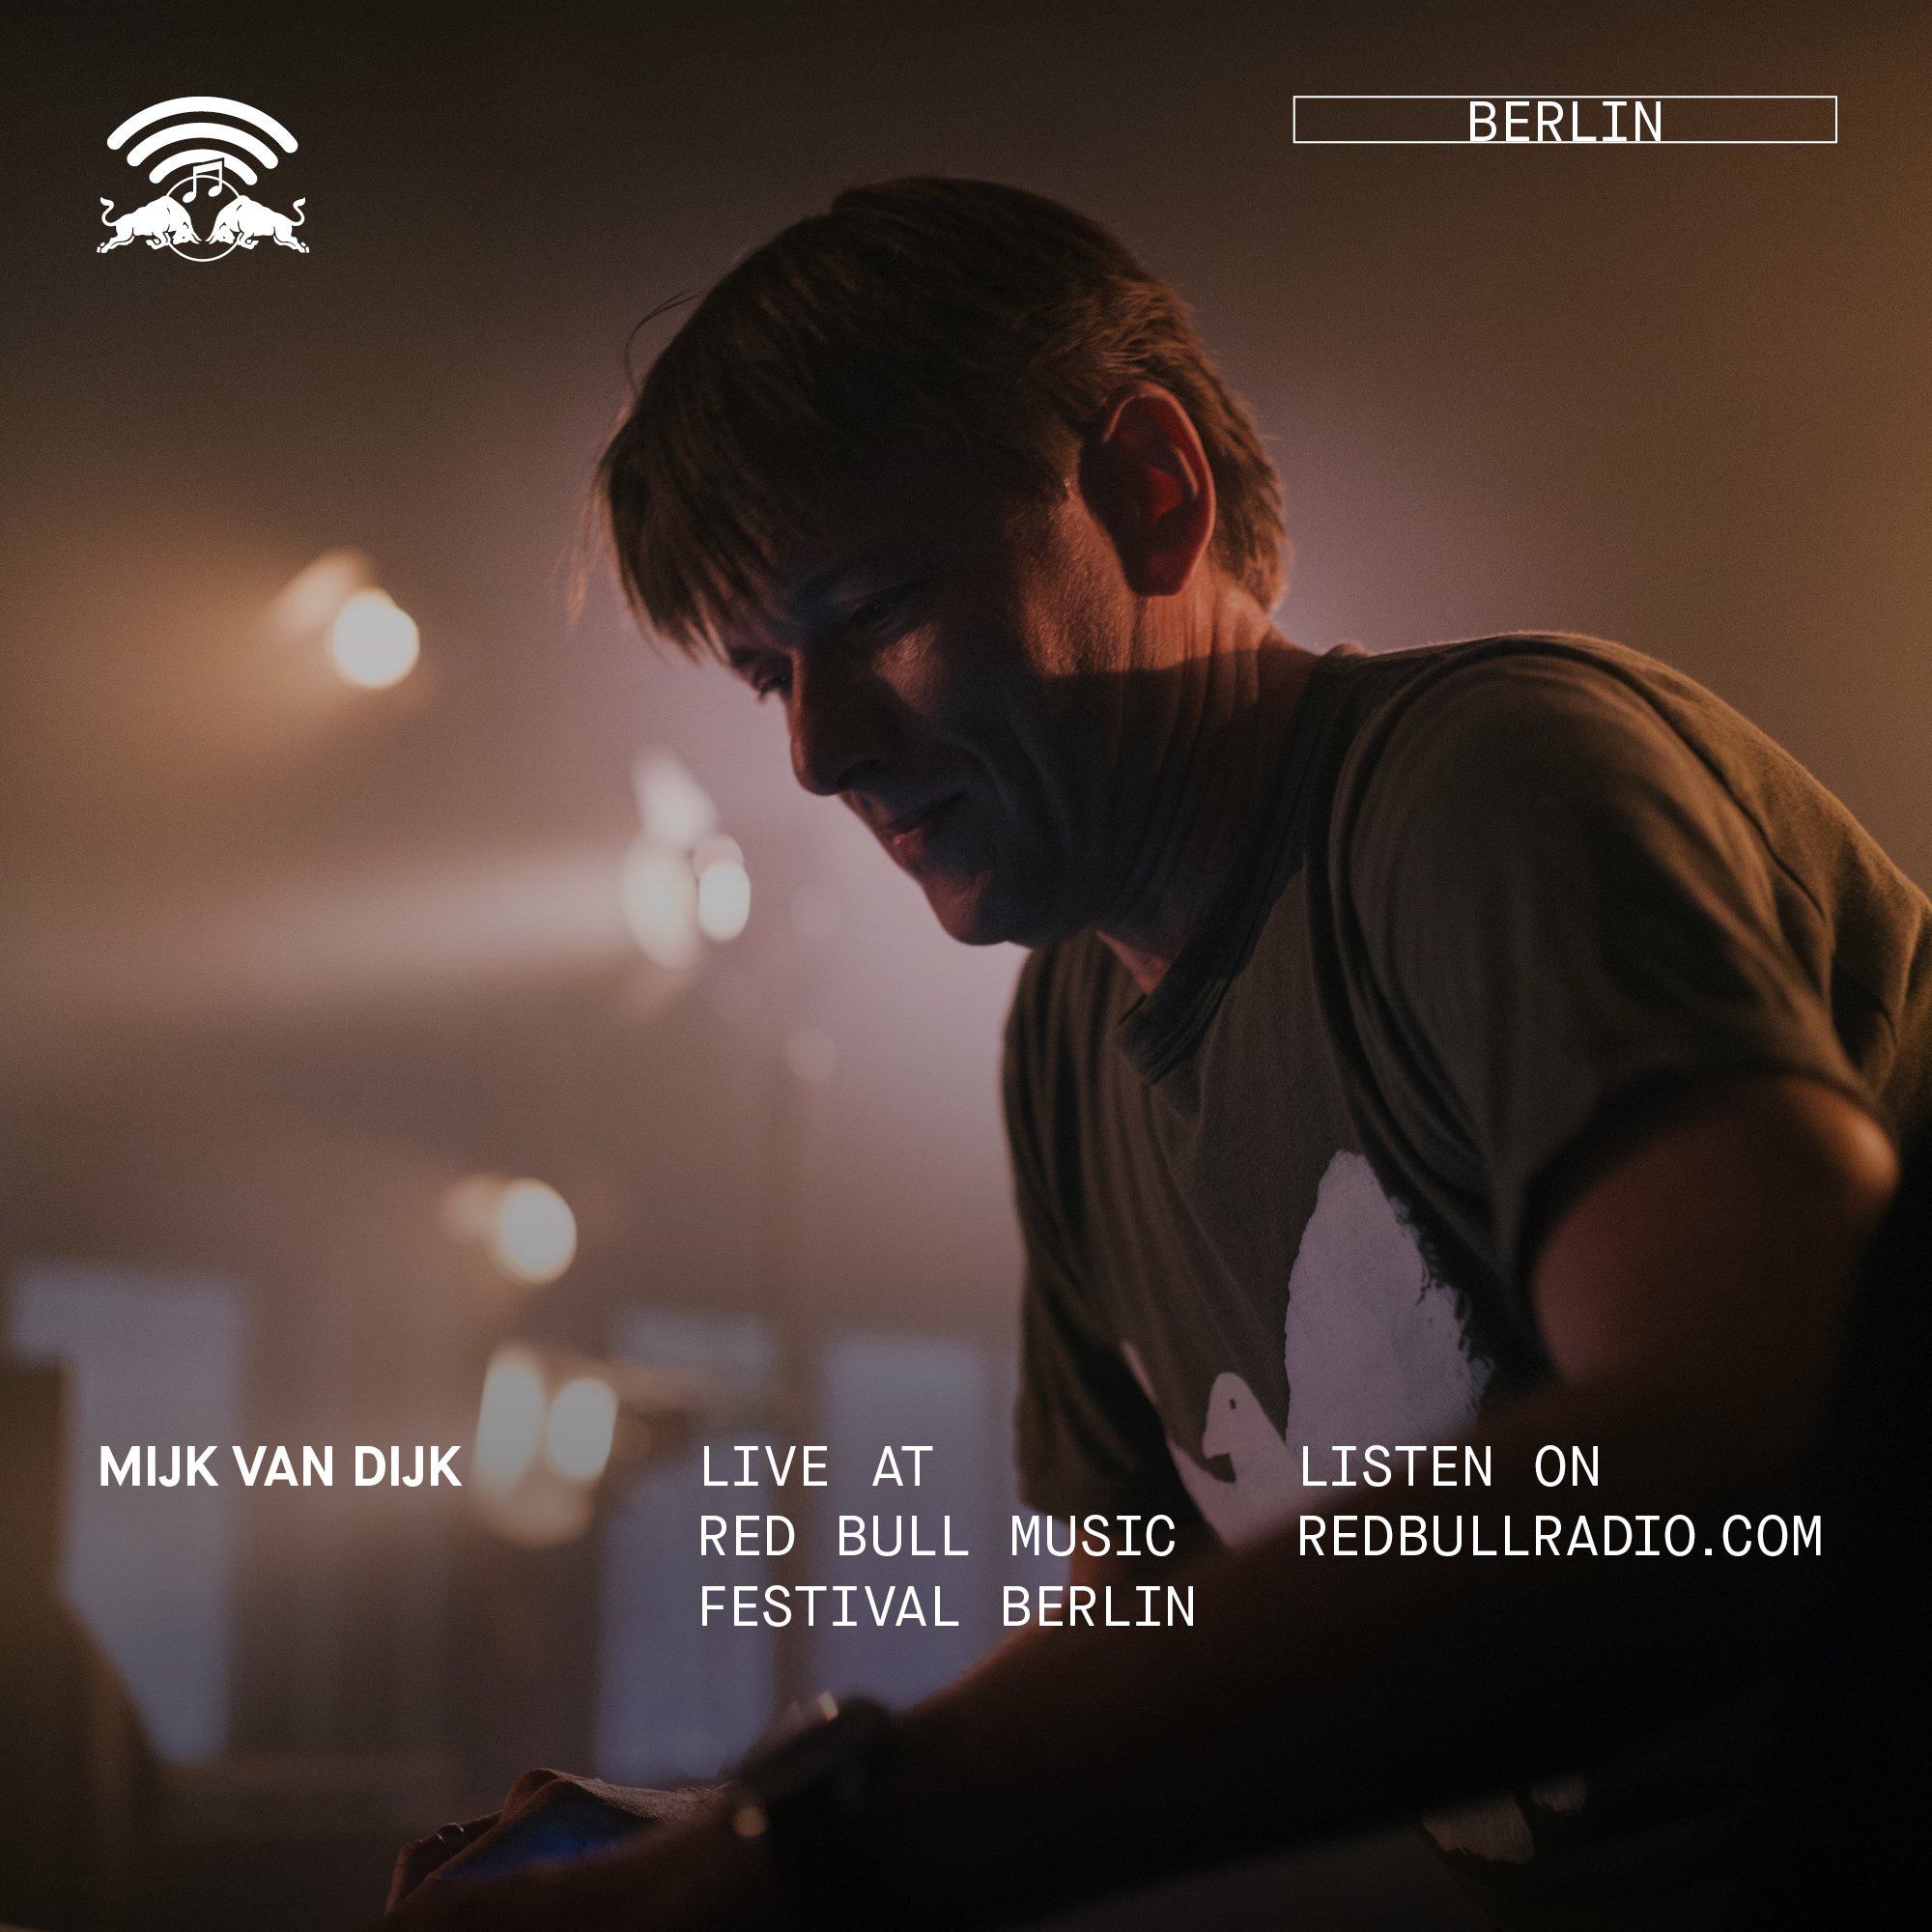 On the floor: Mijk van Dijk at Red Bull Music Festival